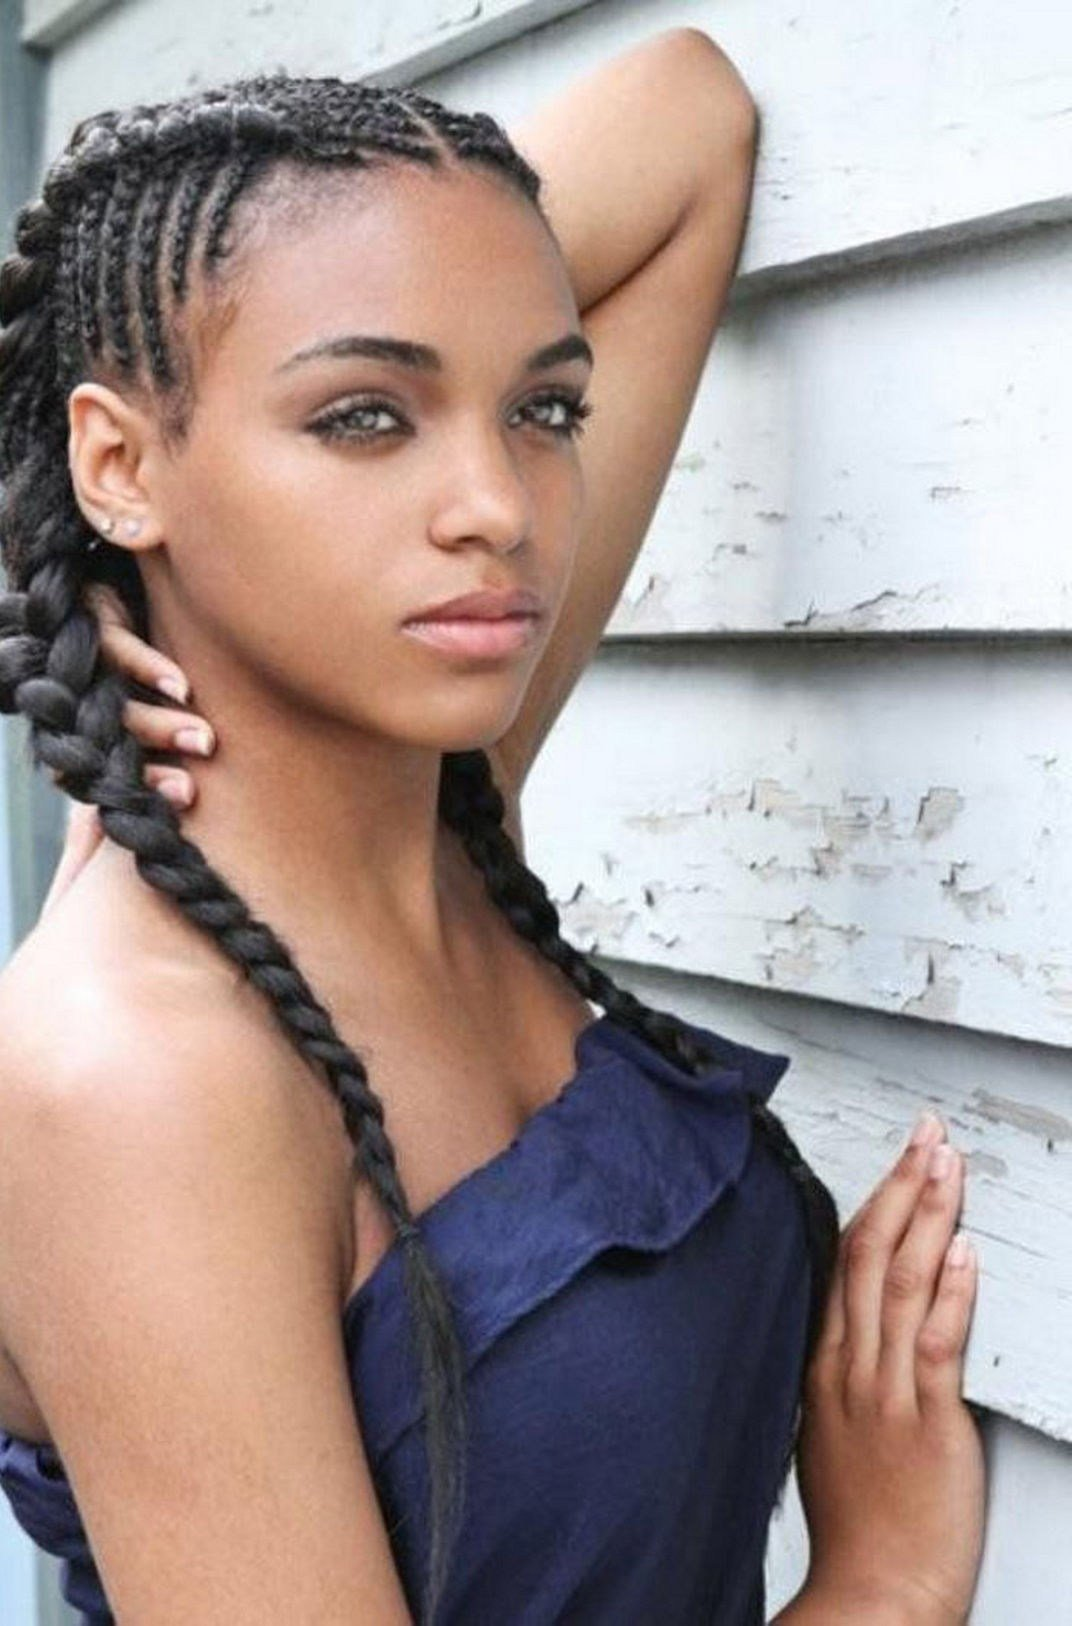 The Best Black People Hairstyles For Girls Hairstyle For Women Man Pictures